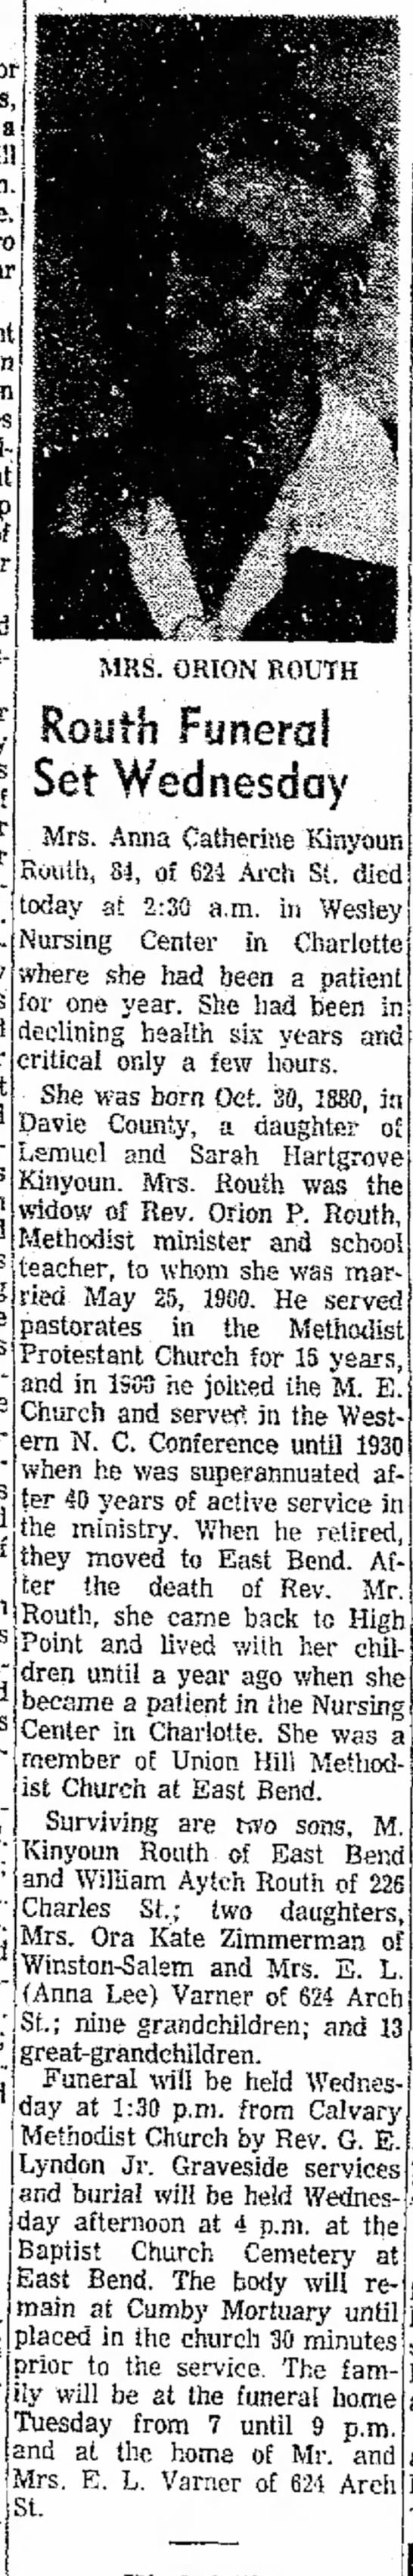 Found in The High Point Enterprise in High Point, North Carolina on Mon, Oct 11, 1965. Mrs. Orion Routh obituary